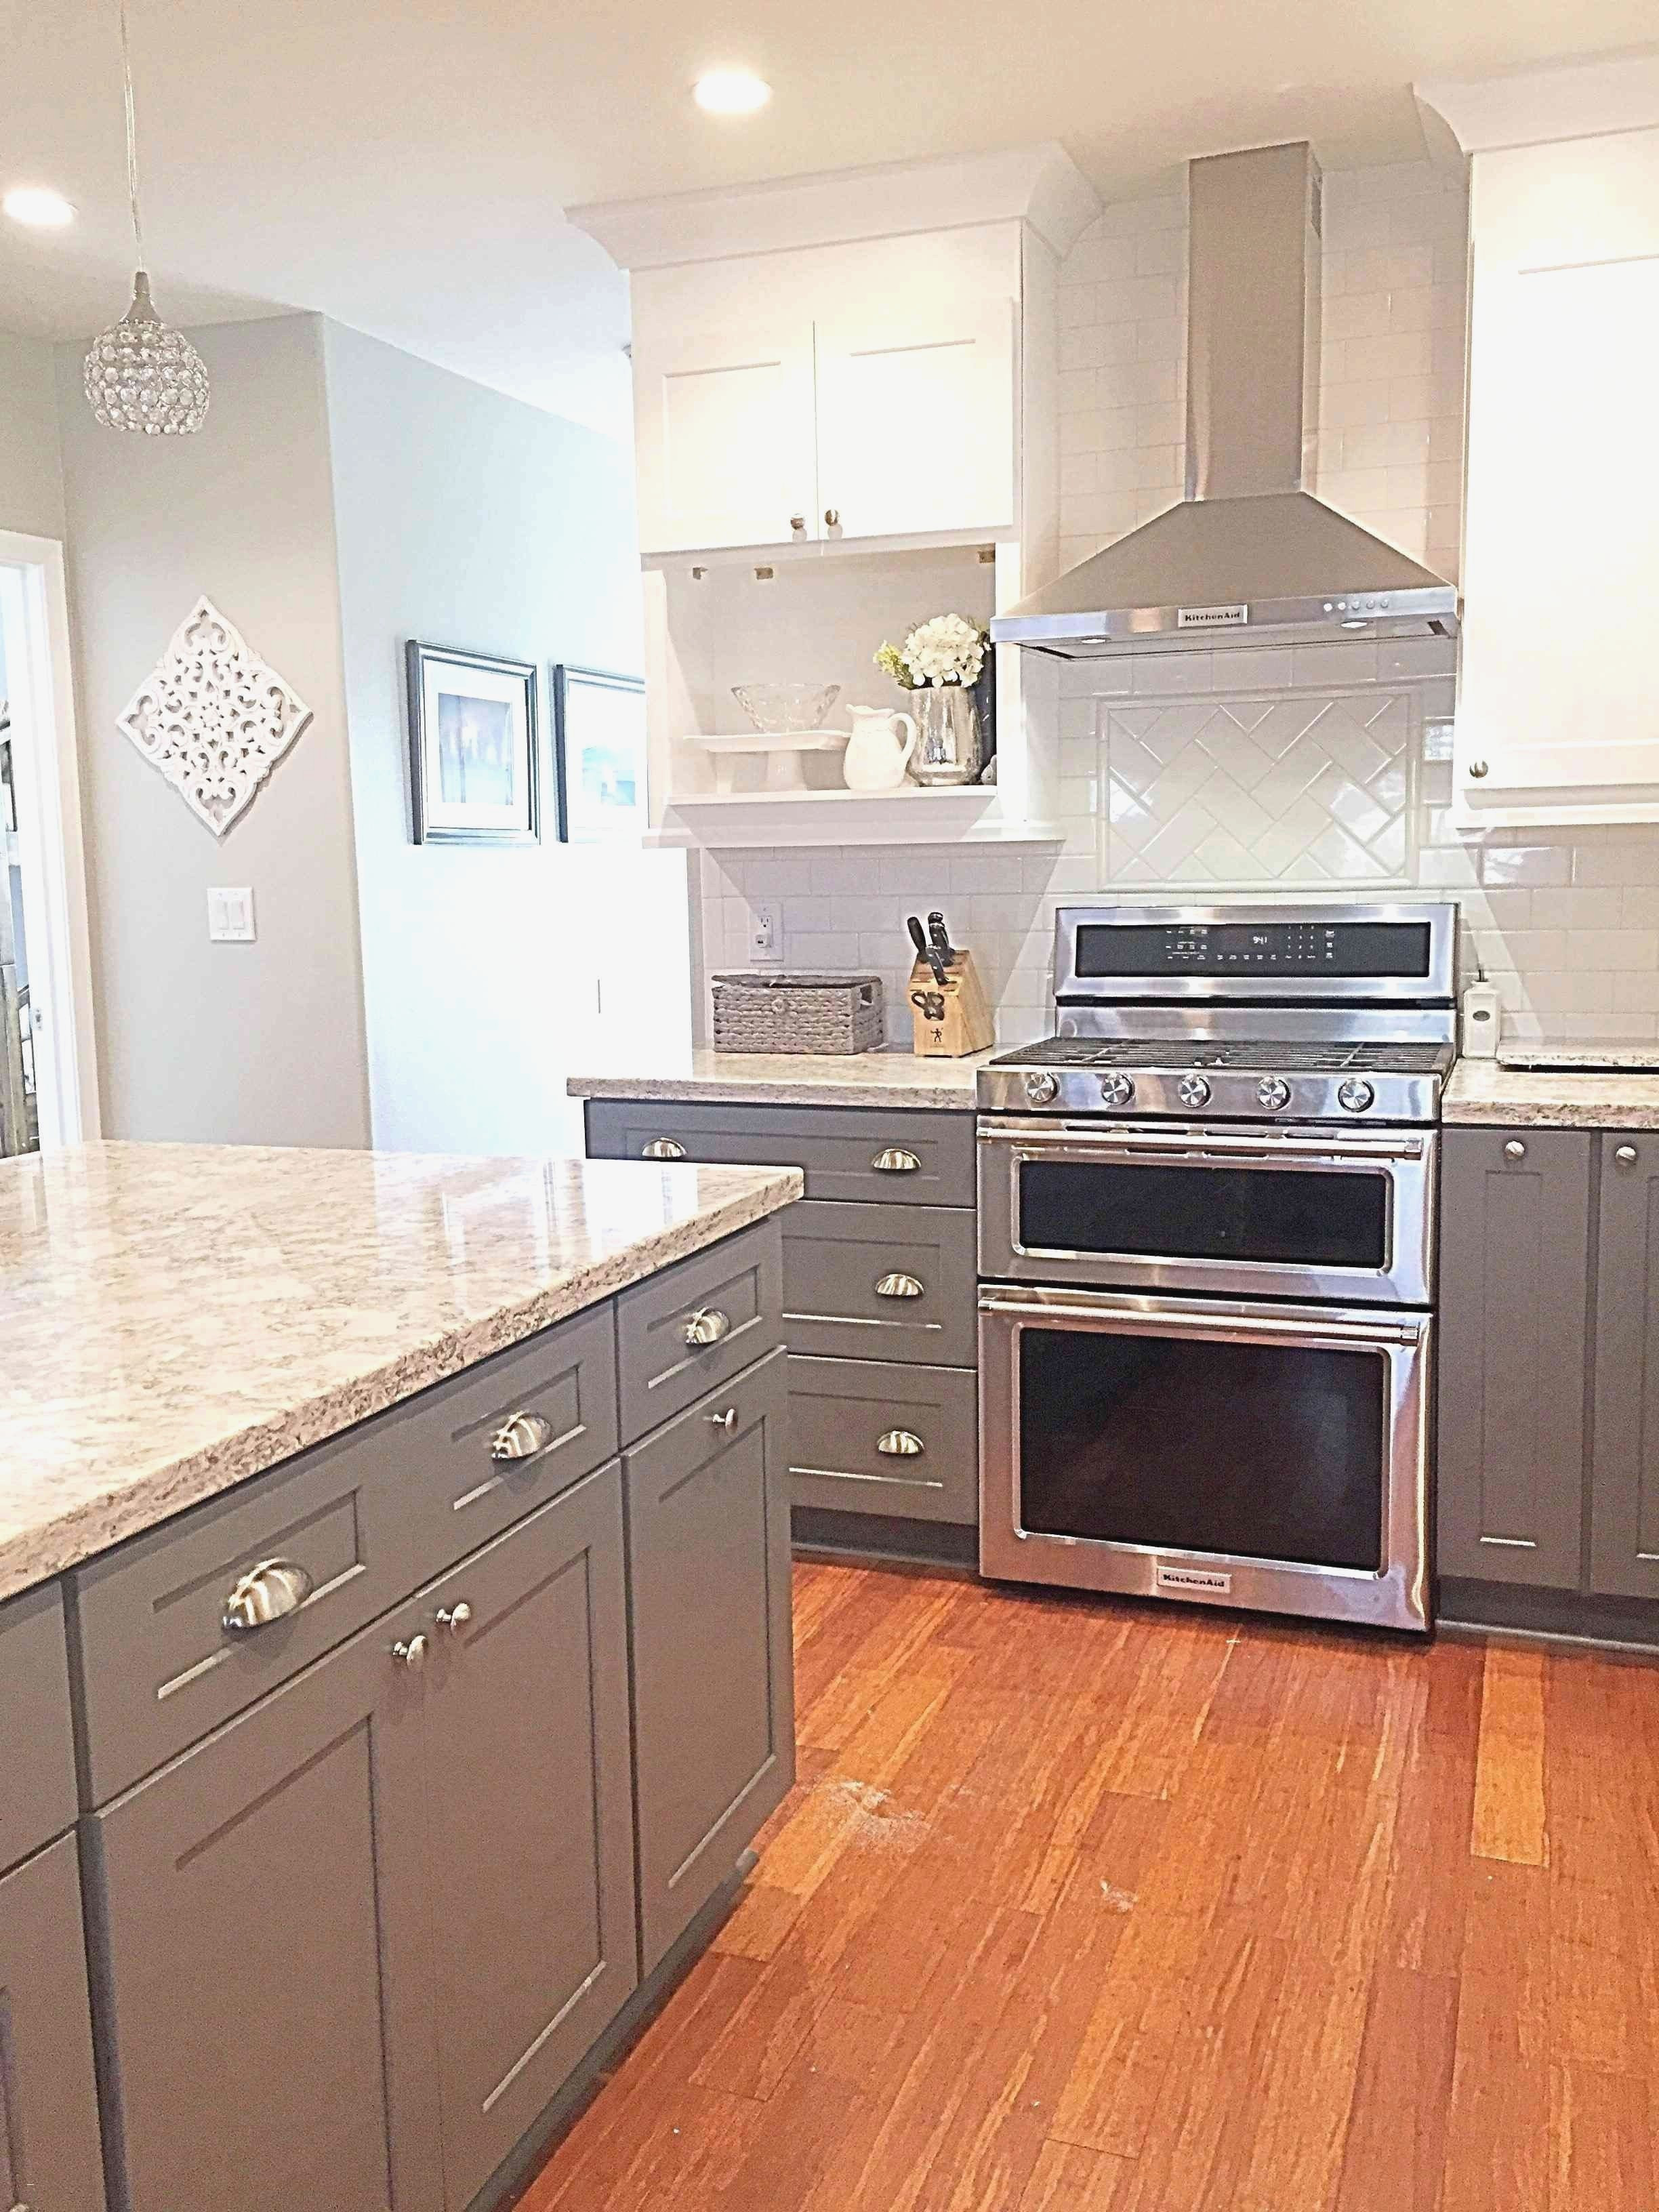 sanding painted hardwood floors of wondrous removing paint from kitchen cabinets best kitchen island within kitchen colors with dark cabinets best colored kitchen cabinets lovely kitchen cabinet 0d interior